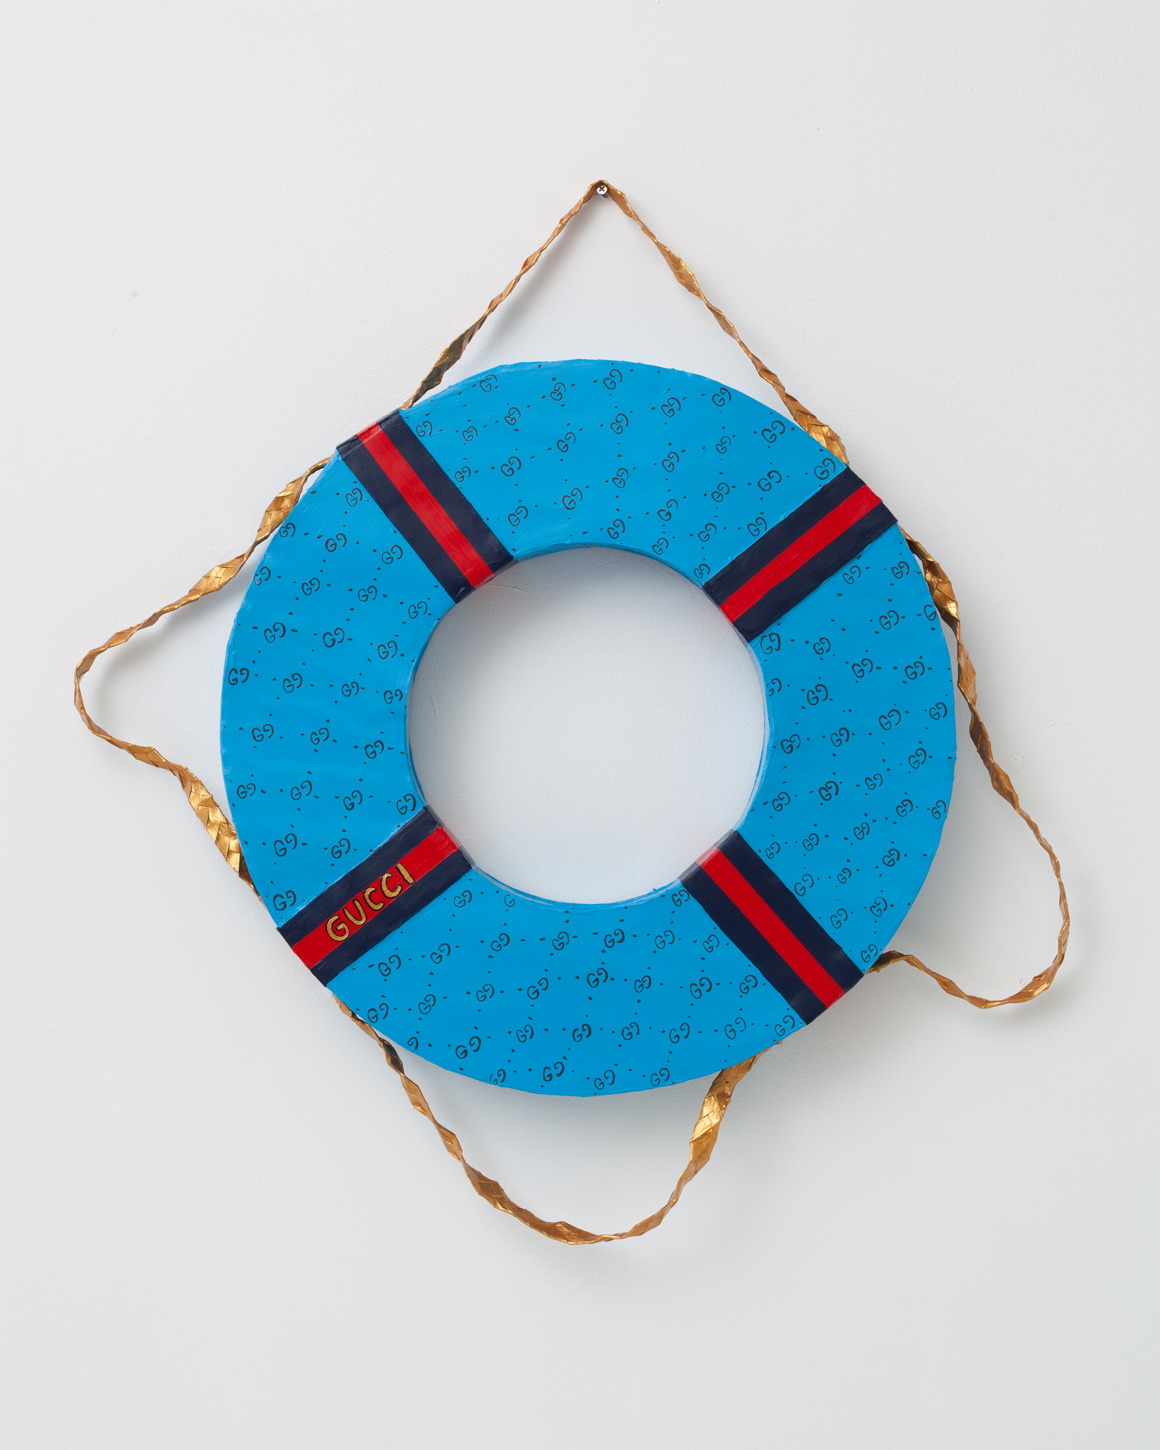 <p><em>Gucci Lifesaver</em><span class='media'>Paper, glue, acrylic</span>32 x 36 x 7 in  (81.3 x 91.4 x 17.8 cm)<br>2015<br><a class='inquire' href='mailto:info@gildargallery.com?subject=Artwork Inquiry LBLA0001&body=I am interested in finding out more about Gucci Lifesaver by Libby Black'>Inquire</a></p>